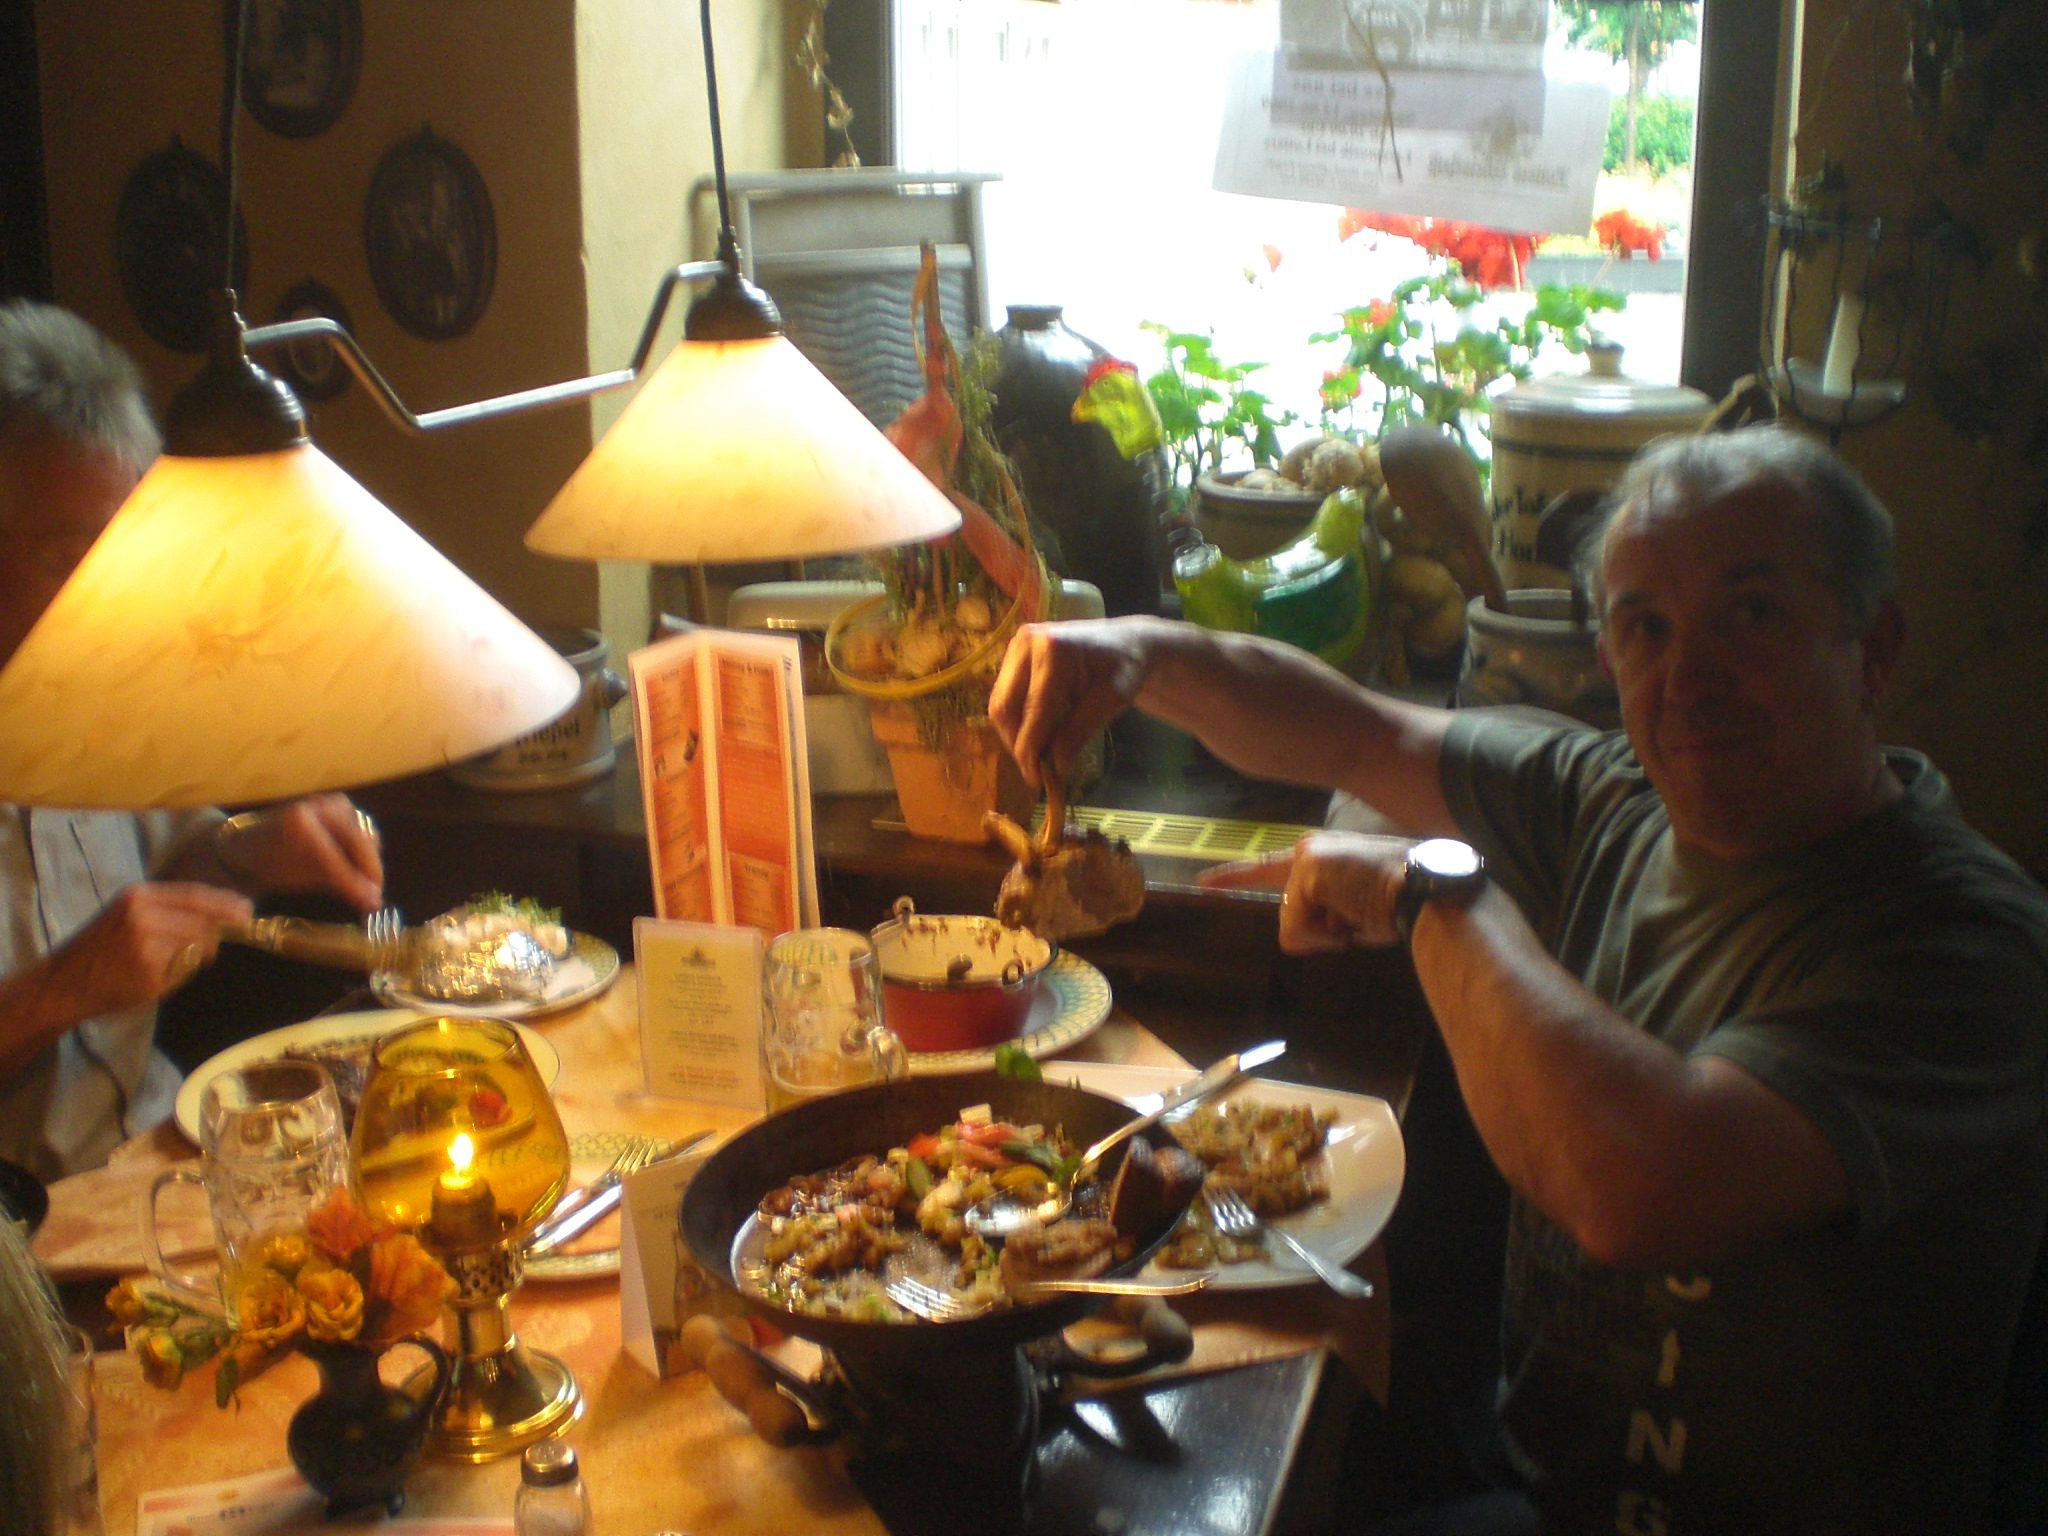 The Dozys postpone the soundcheck in favour of dinner....